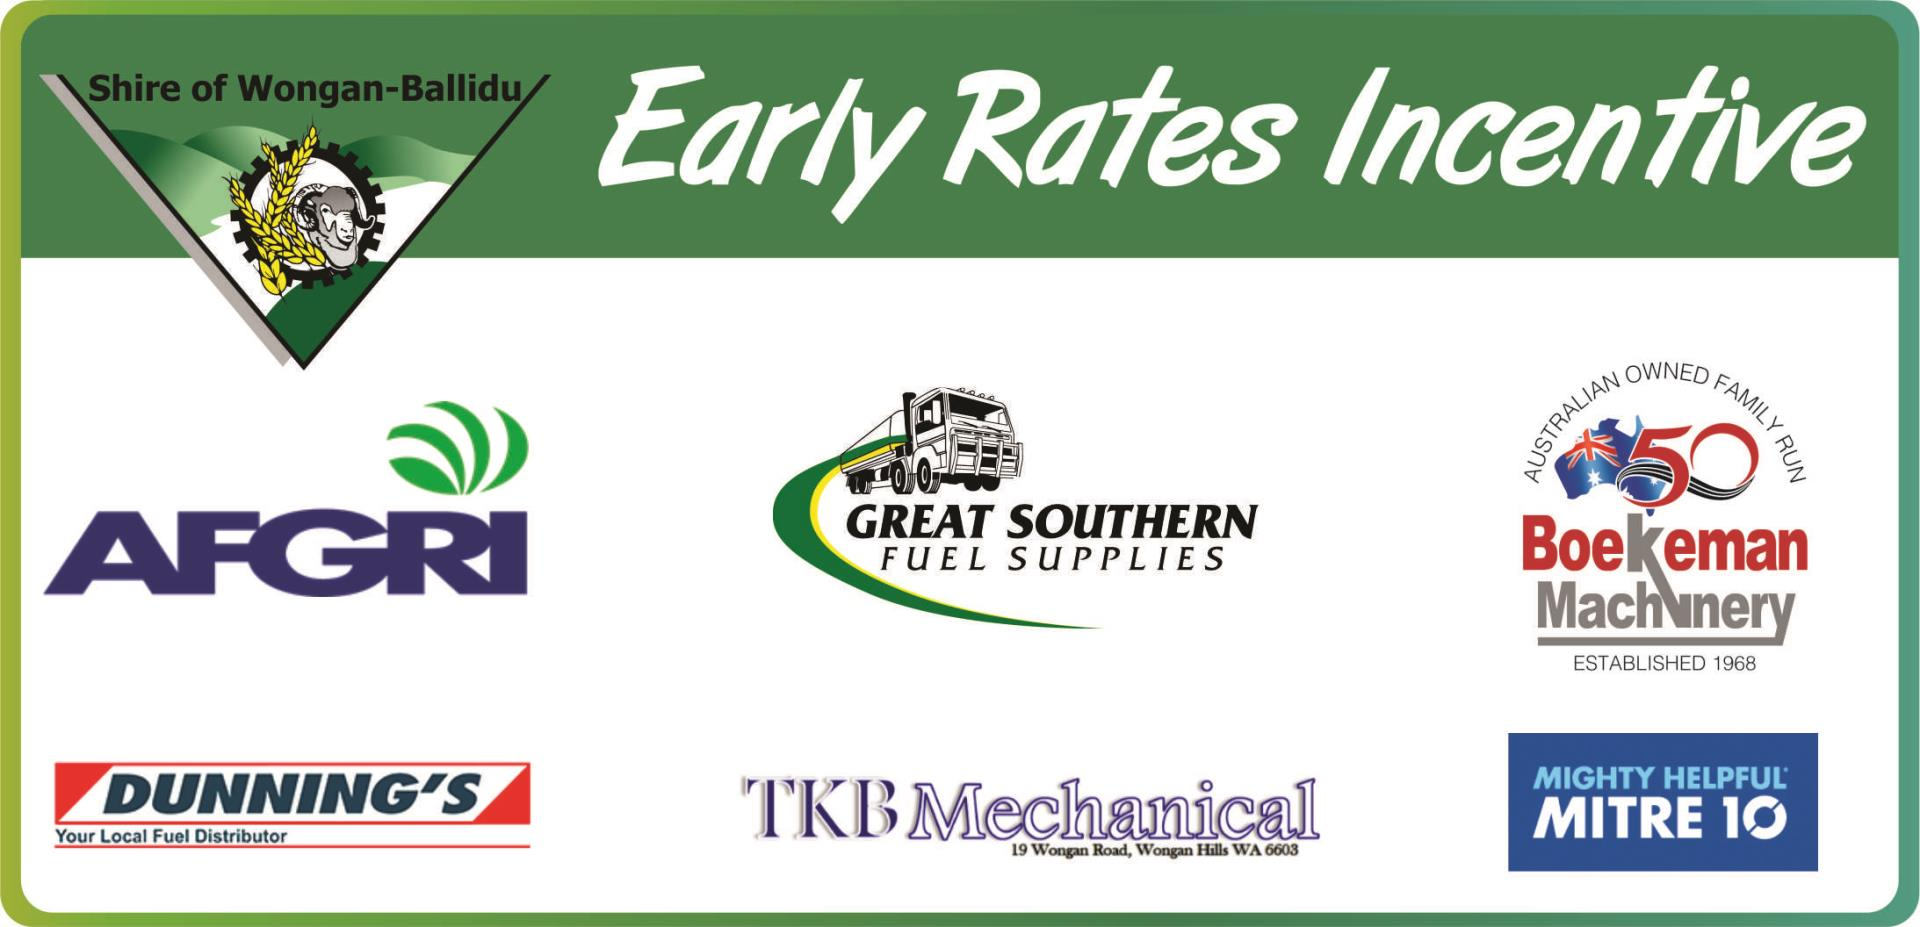 Early Rates Incentive